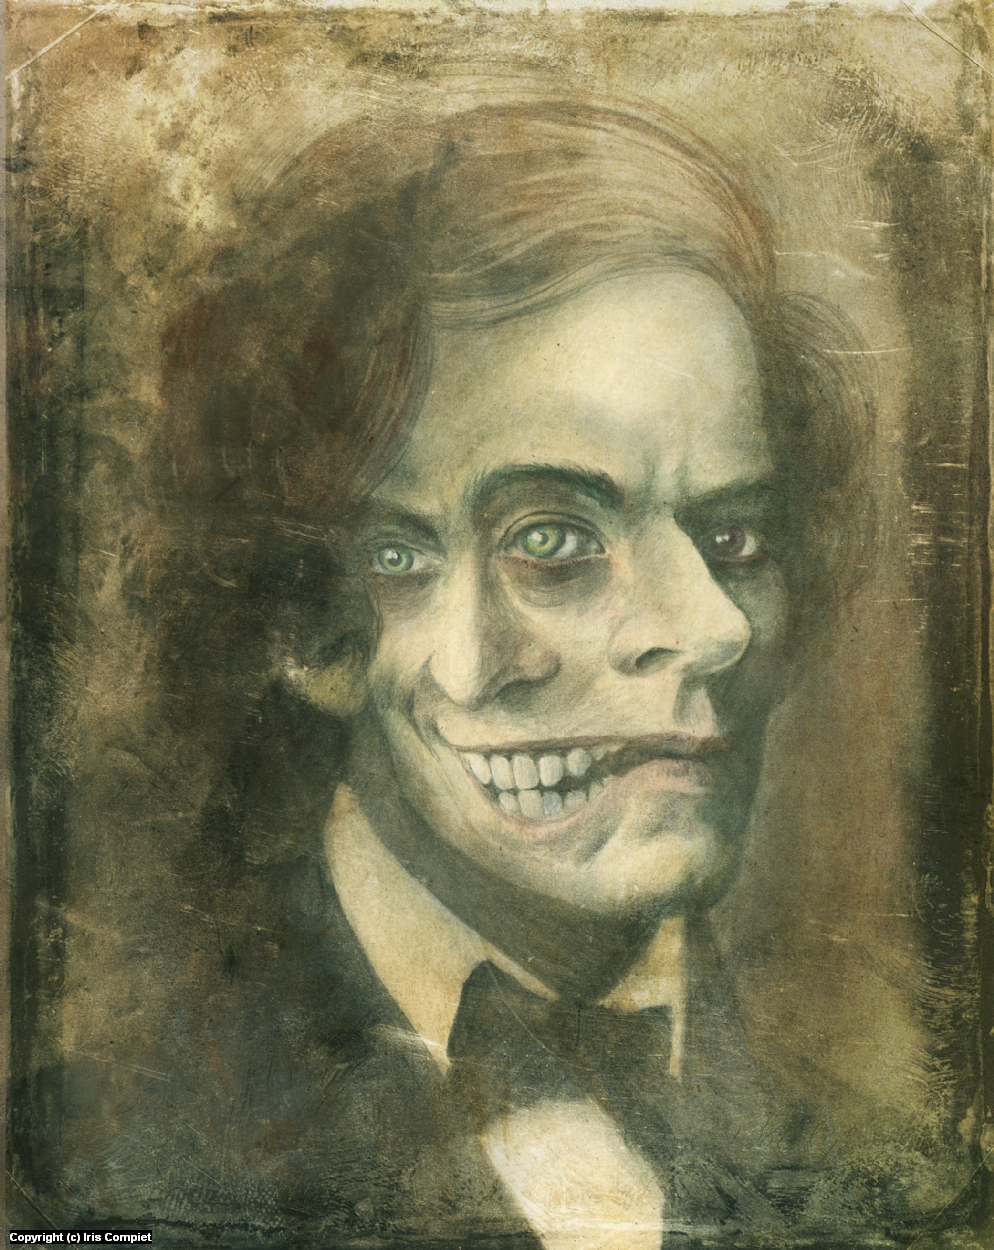 Jekyll and Hyde Artwork by iris compiet